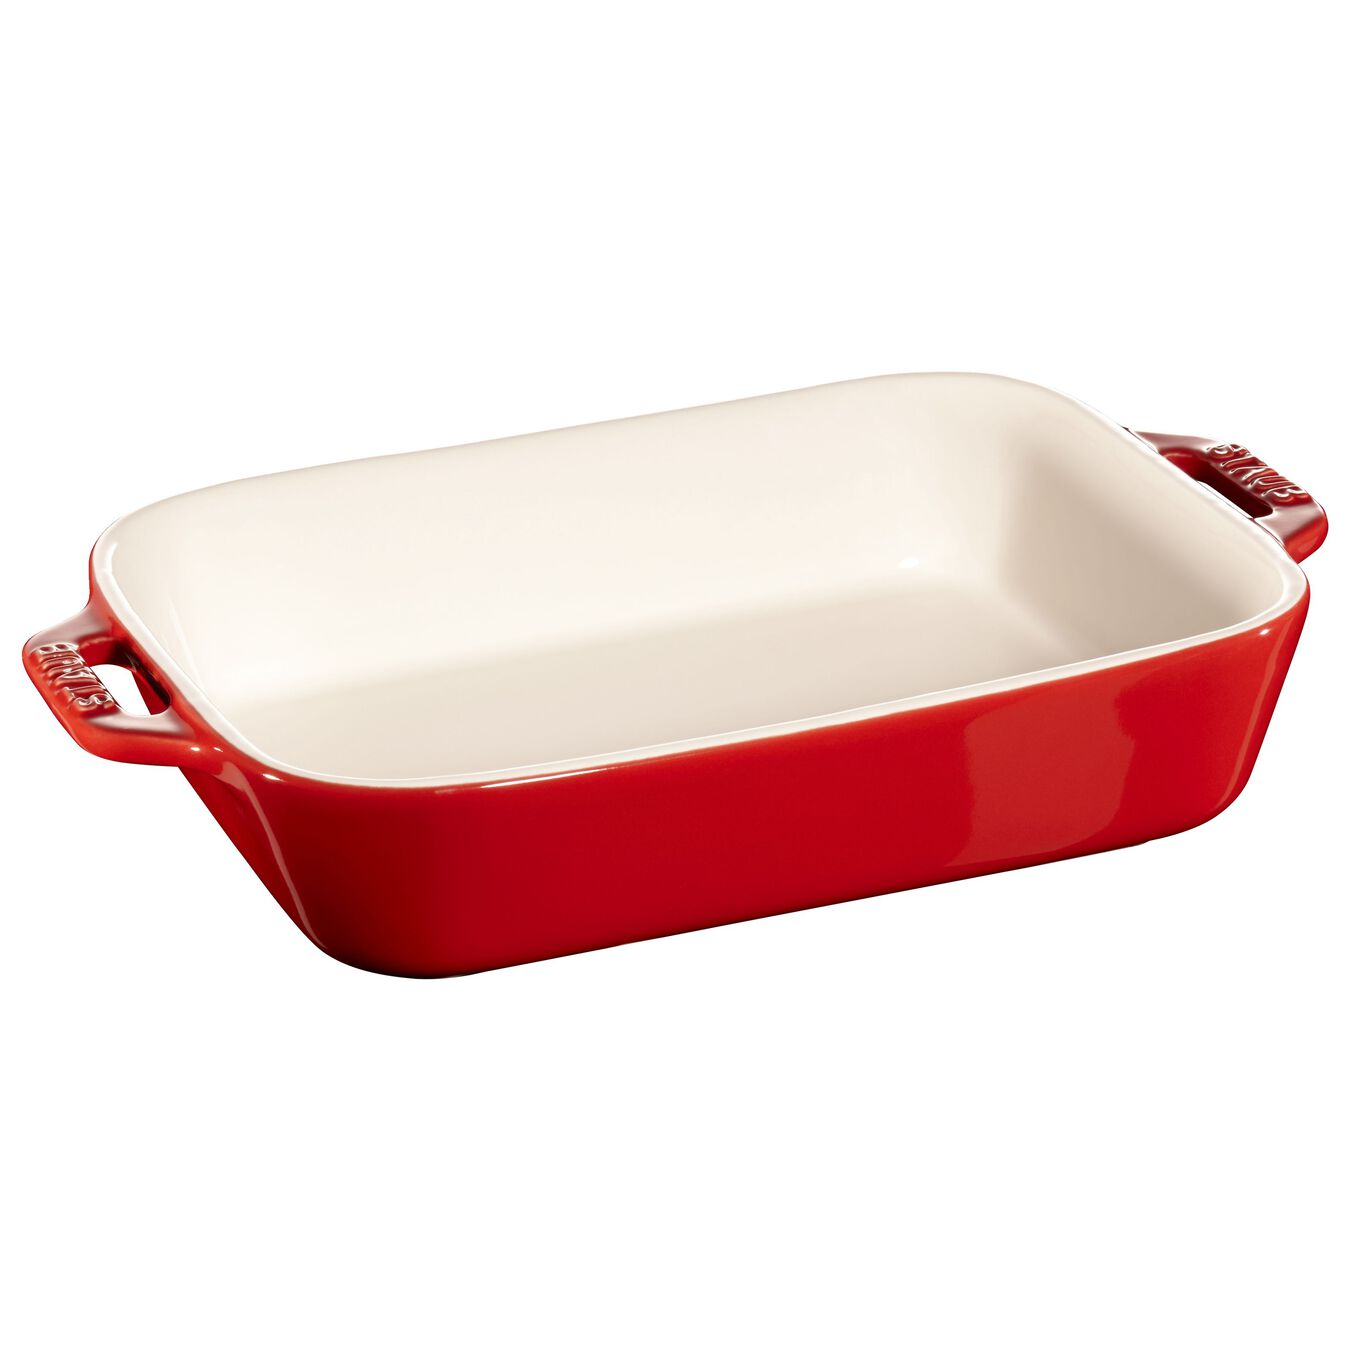 2-pc Rectangular Baking Dish Set - Cherry,,large 3